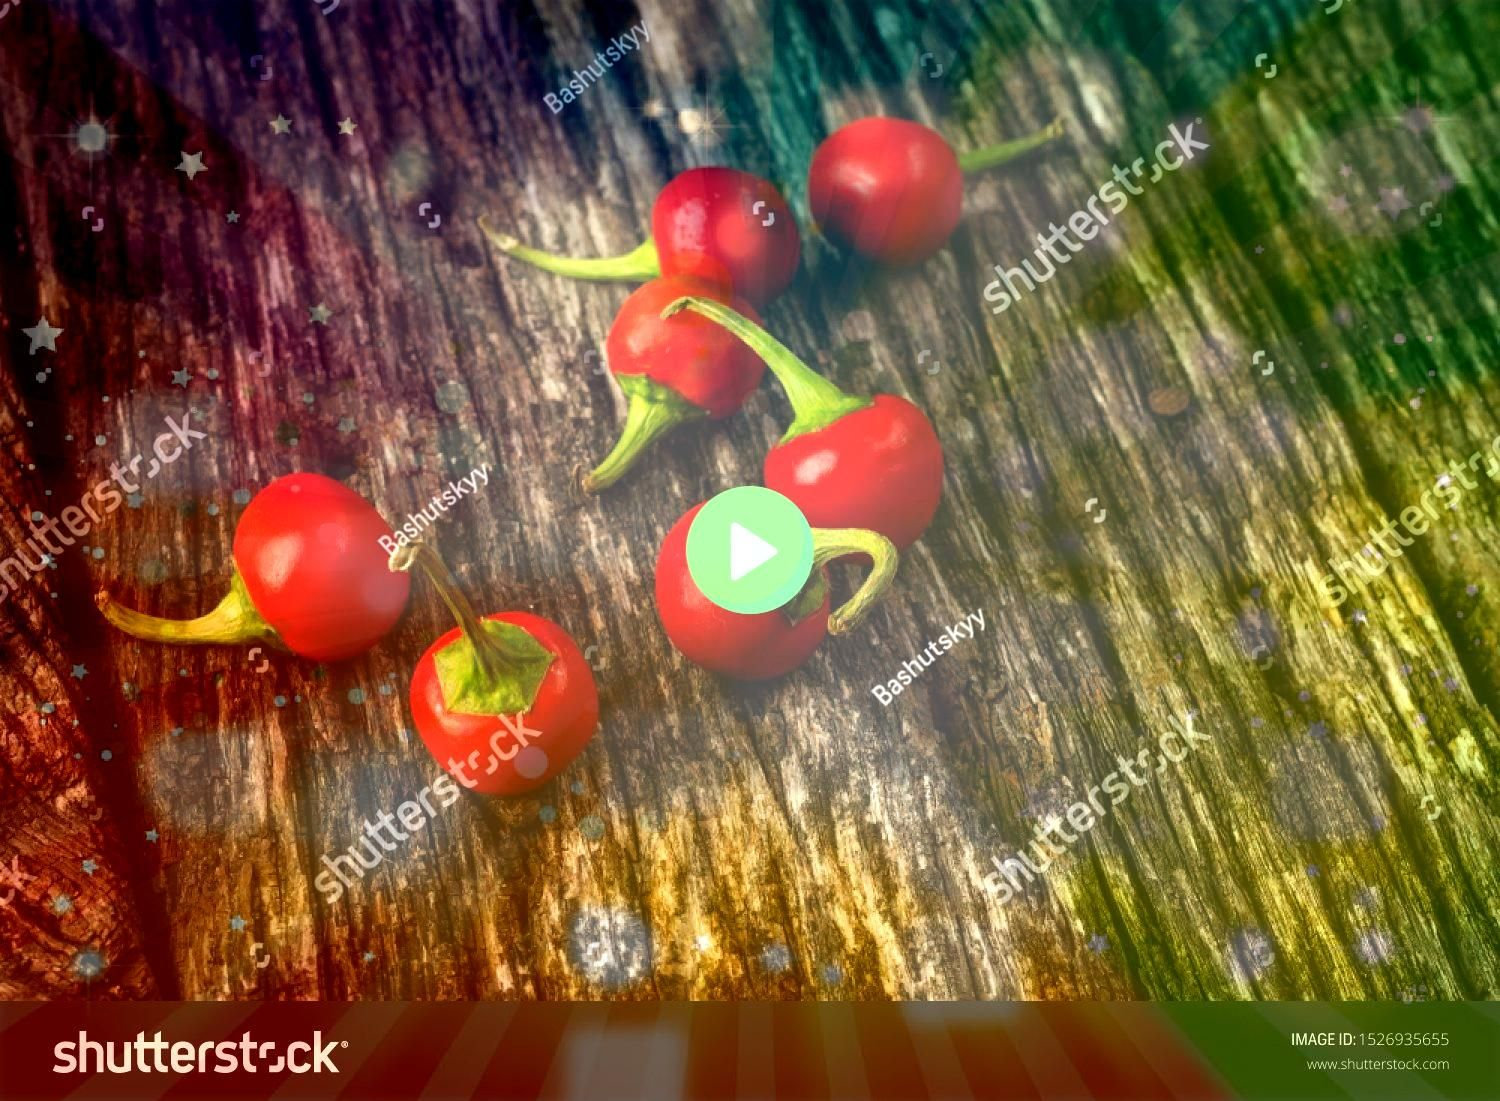 and drink still life concept Raw chilli peppers on a rustic wooden table Selective focus top view flat lay overhead Food and drink still life concept Raw chilli peppers o...